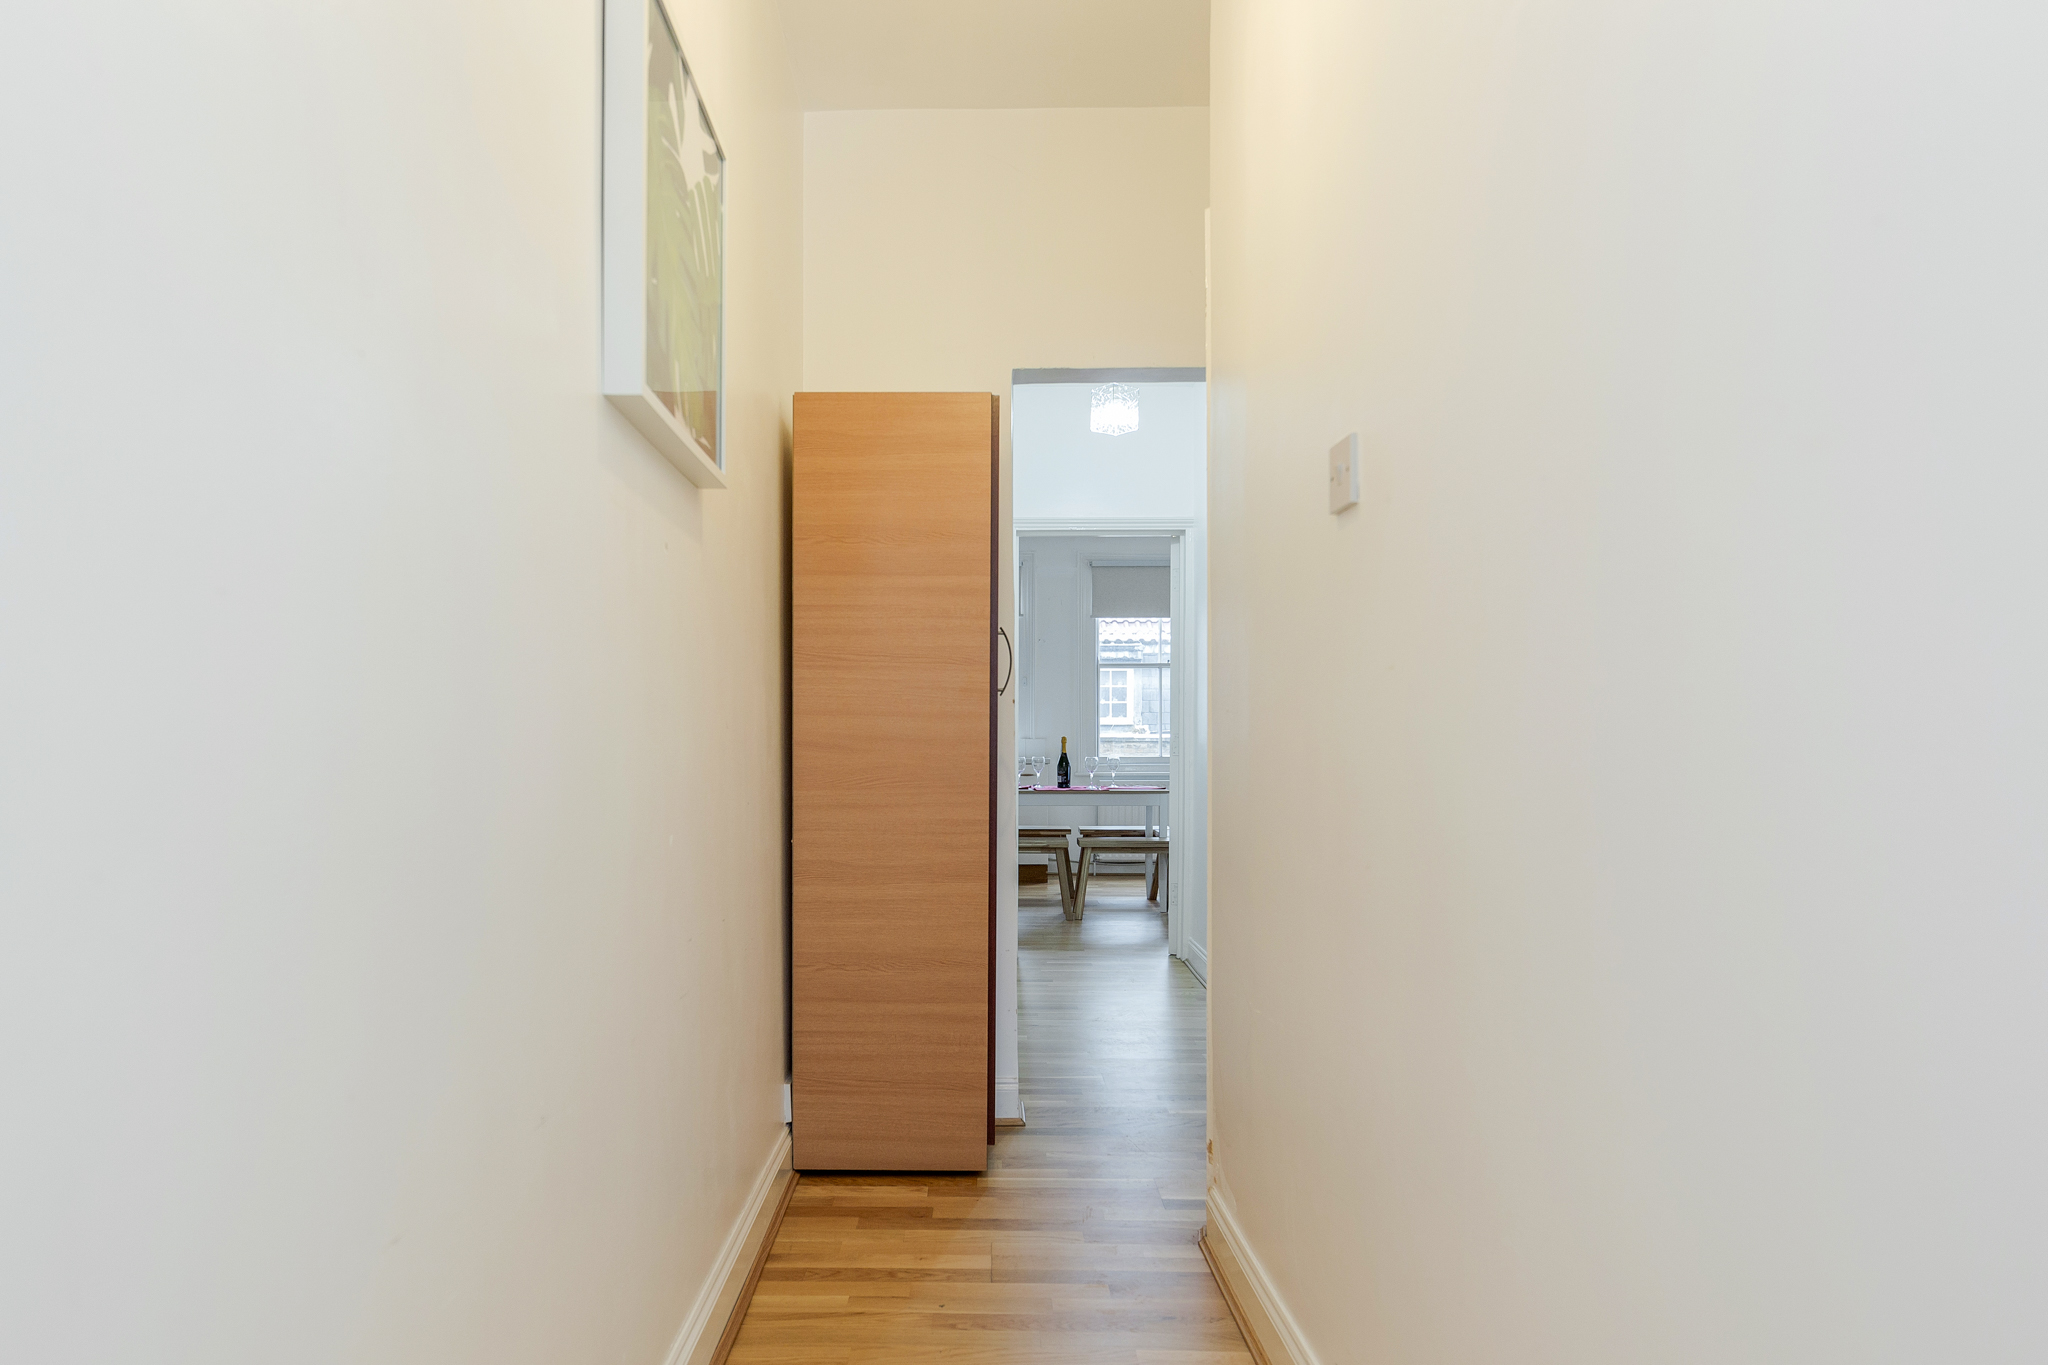 Apartment Contemporary East London Style Apartment in the heart of Brick Lane - one Minute from The Truman Brewery  photo 20192452